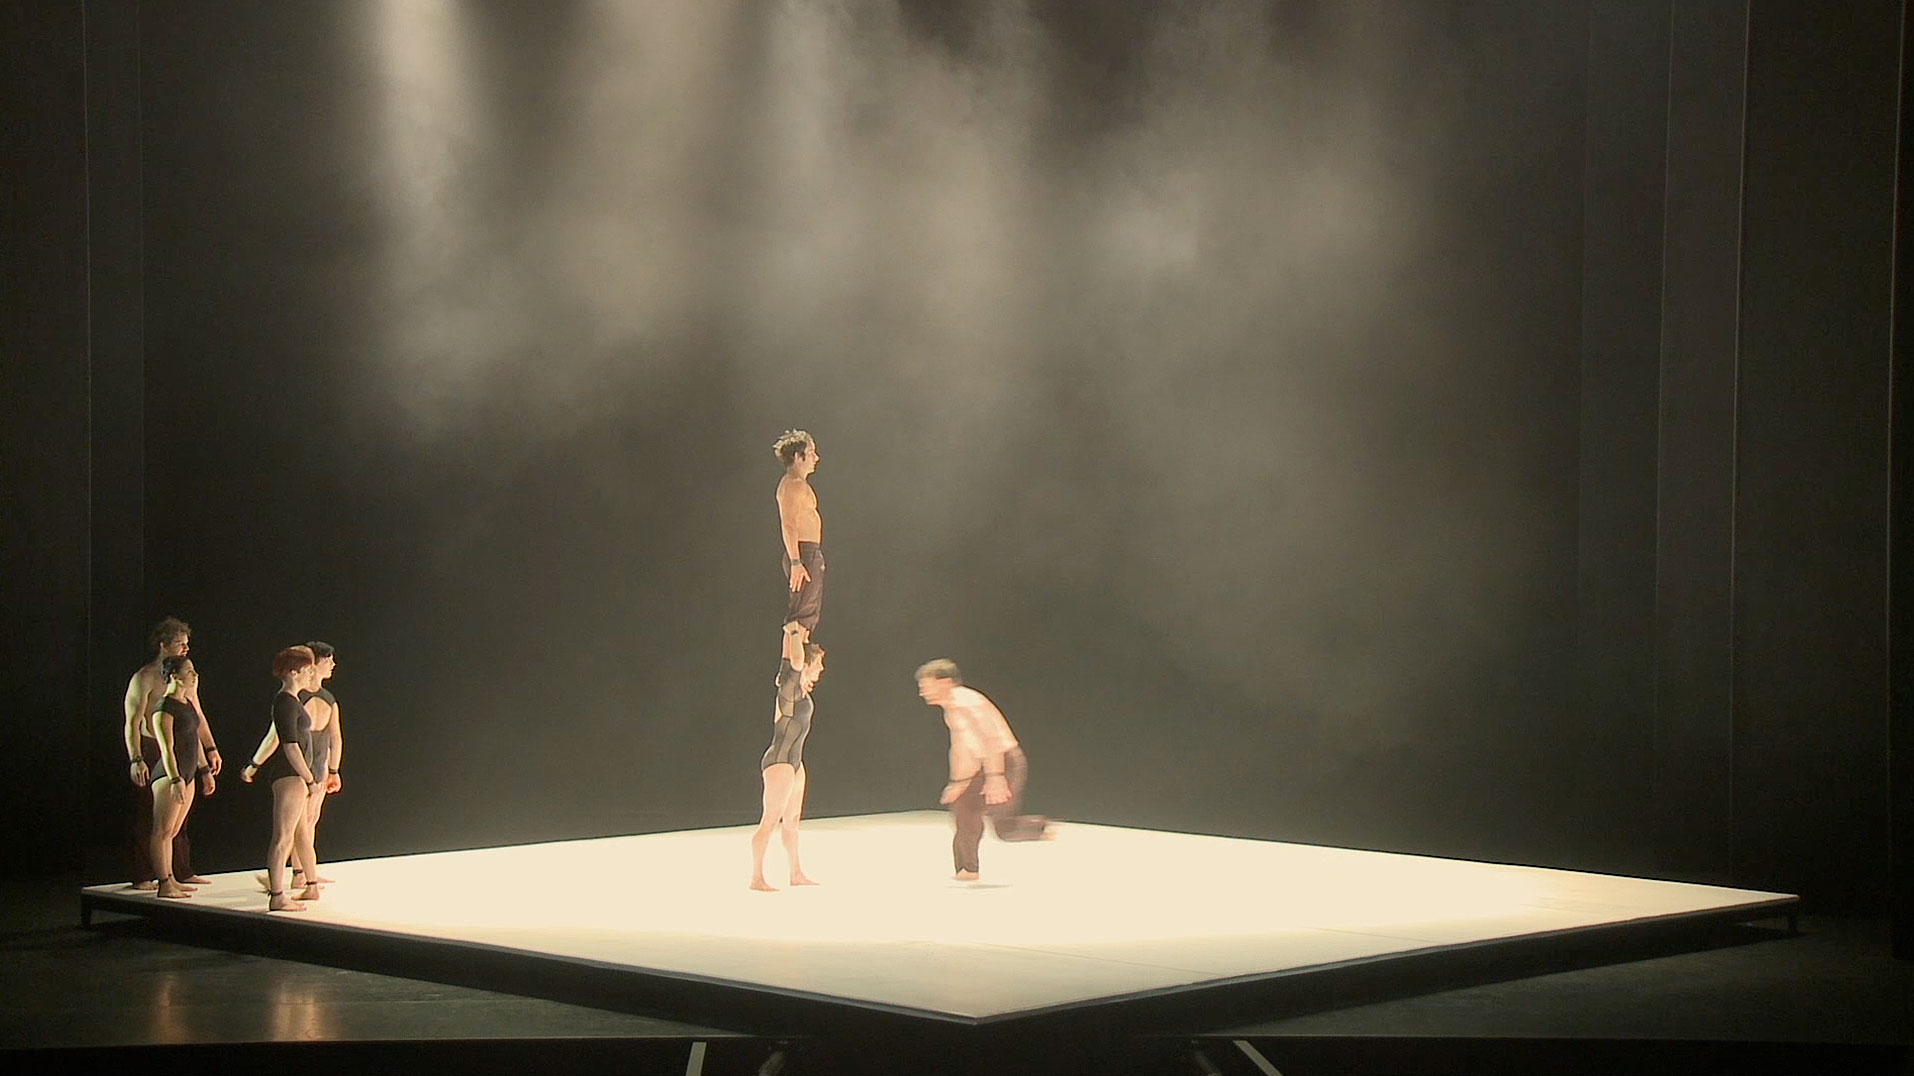 75a aus Stuttgart schneidet den Company-Trailer für das Colours International Dance Festival 2015 presented by Eric Gauthier